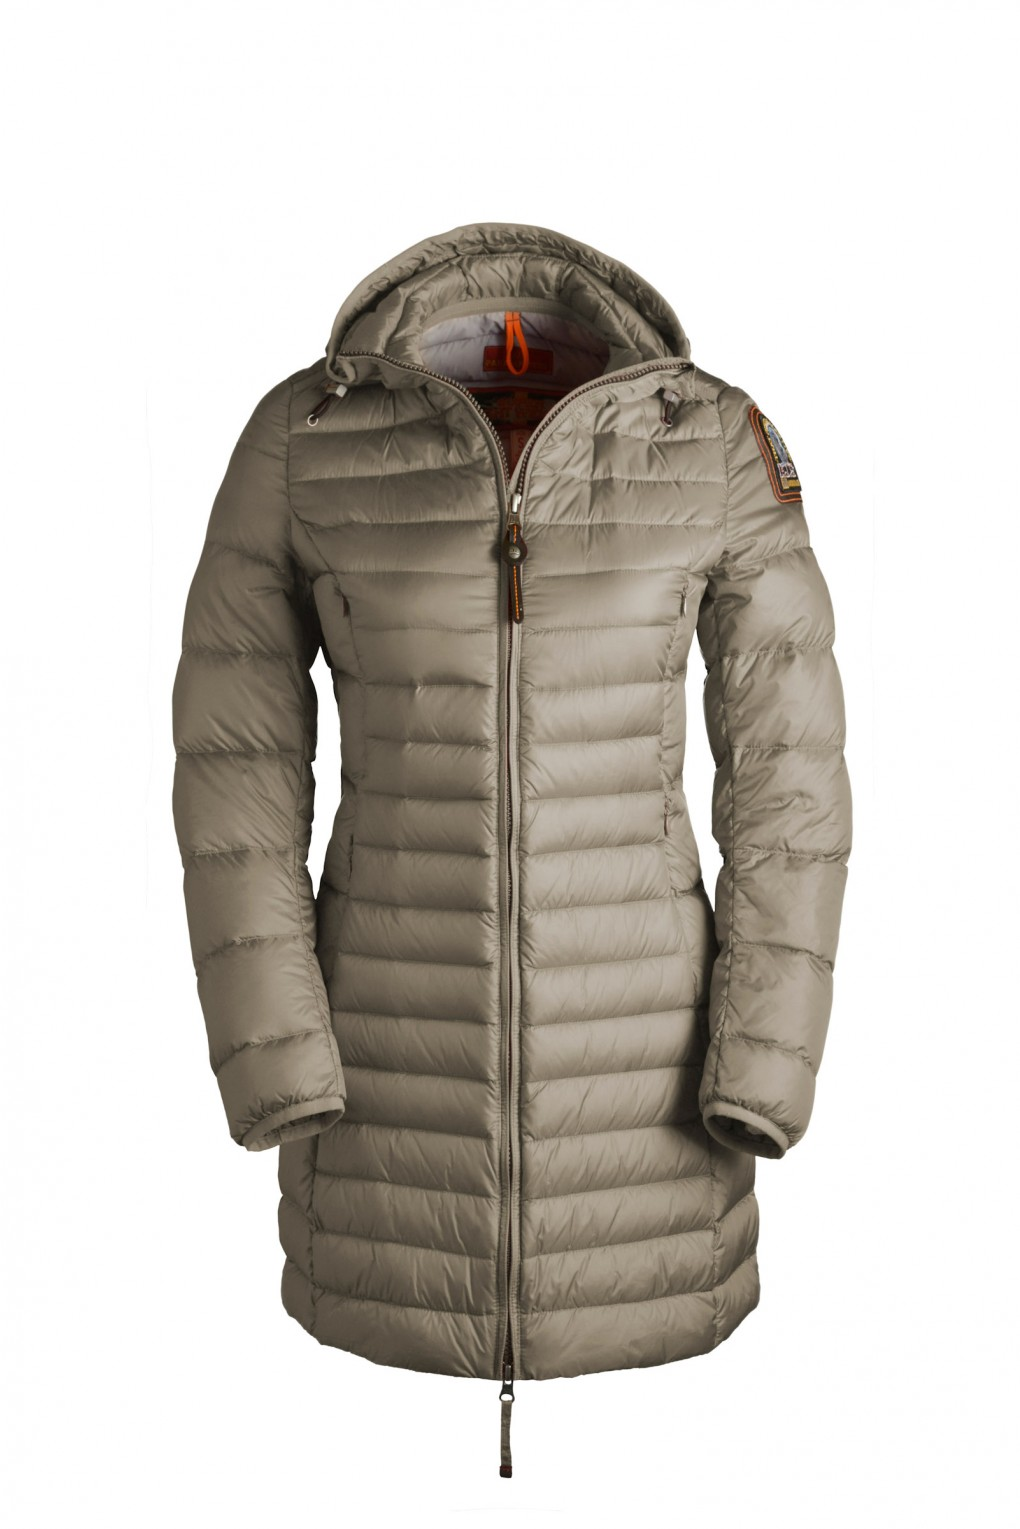 parajumpers IRENE6 woman outerwear Cappuccino